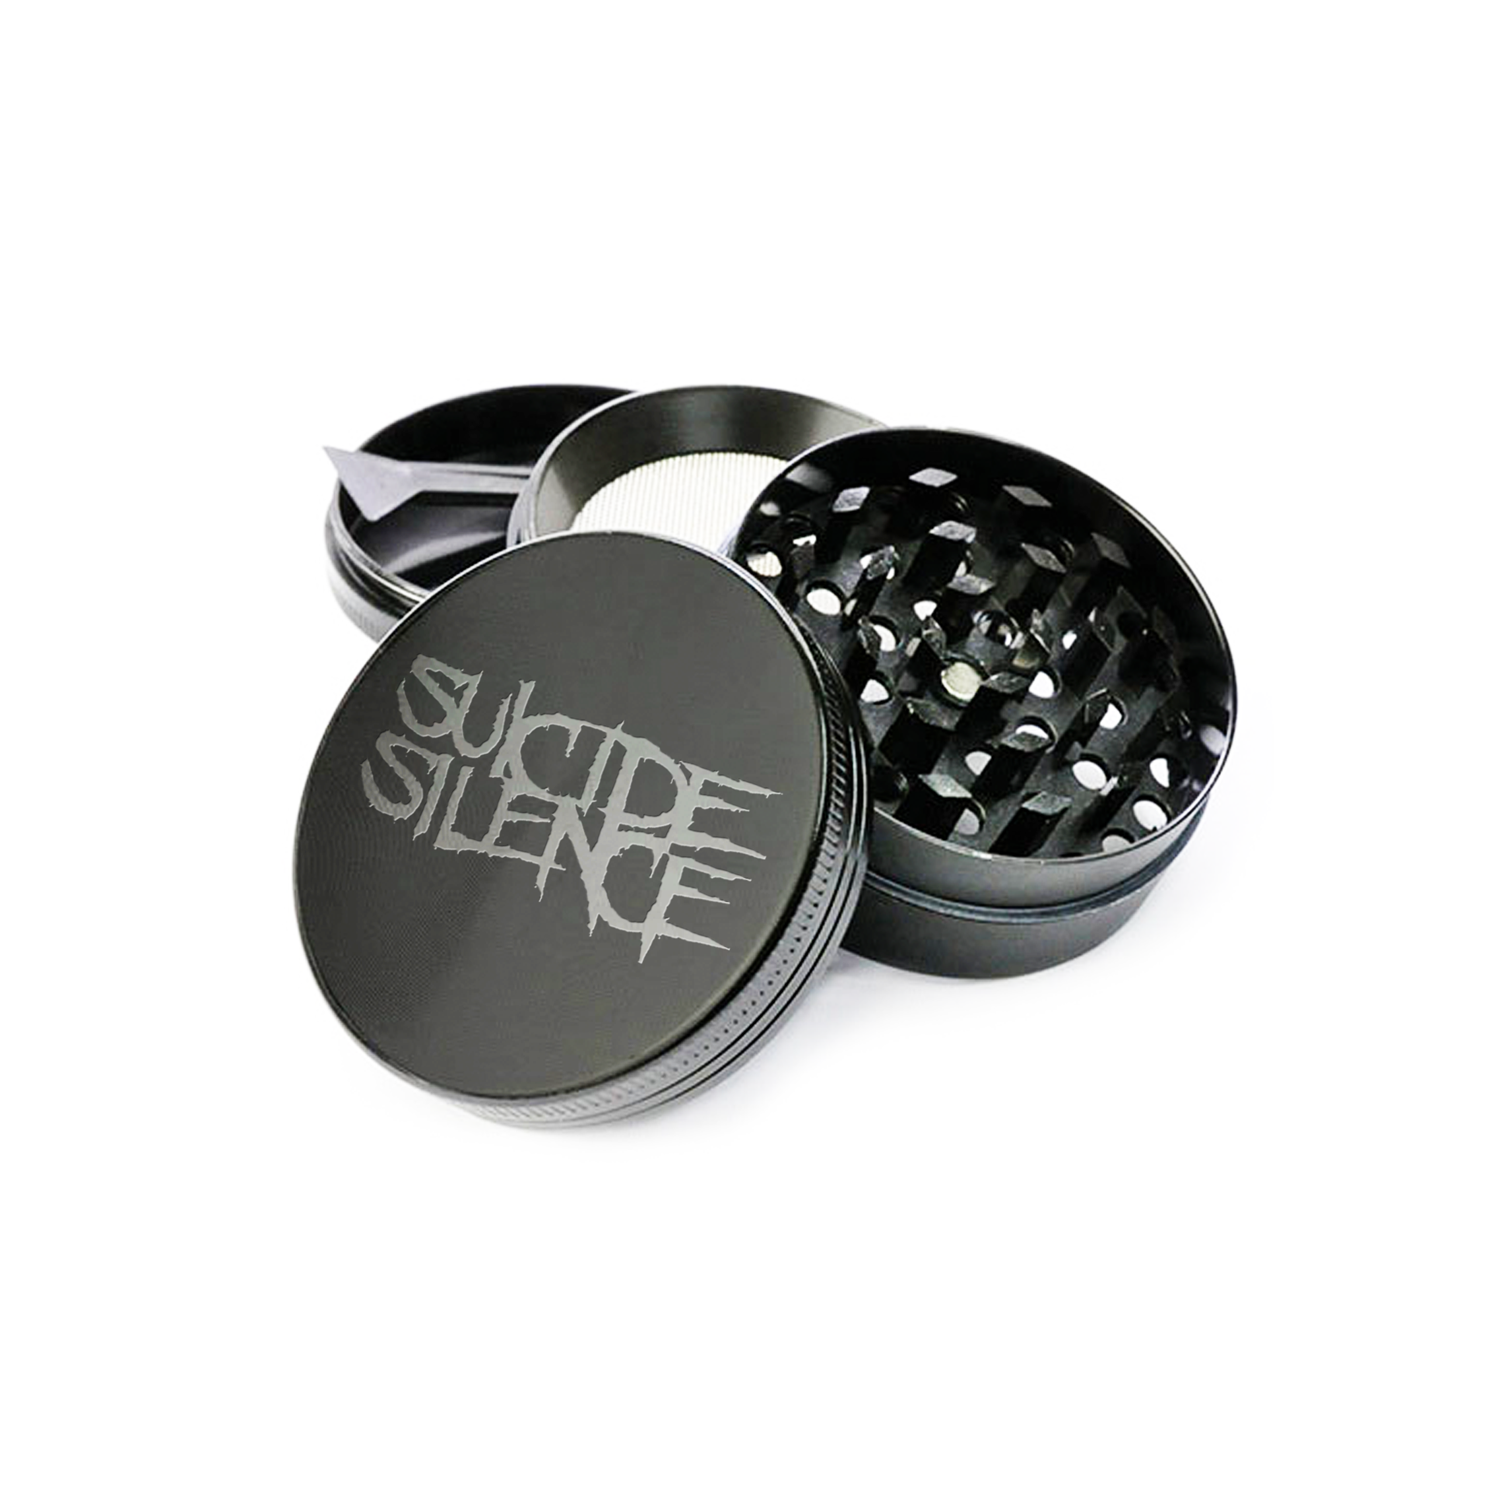 Official Suicide Silence Store Logo Grinder, Official Merch, Official Store, Official Shop, Hoodies, Official Merchandise, T-shirts, Hoodies, Jackets, Shirts, Mitch Lucker, killermerch.com, Killer Merch